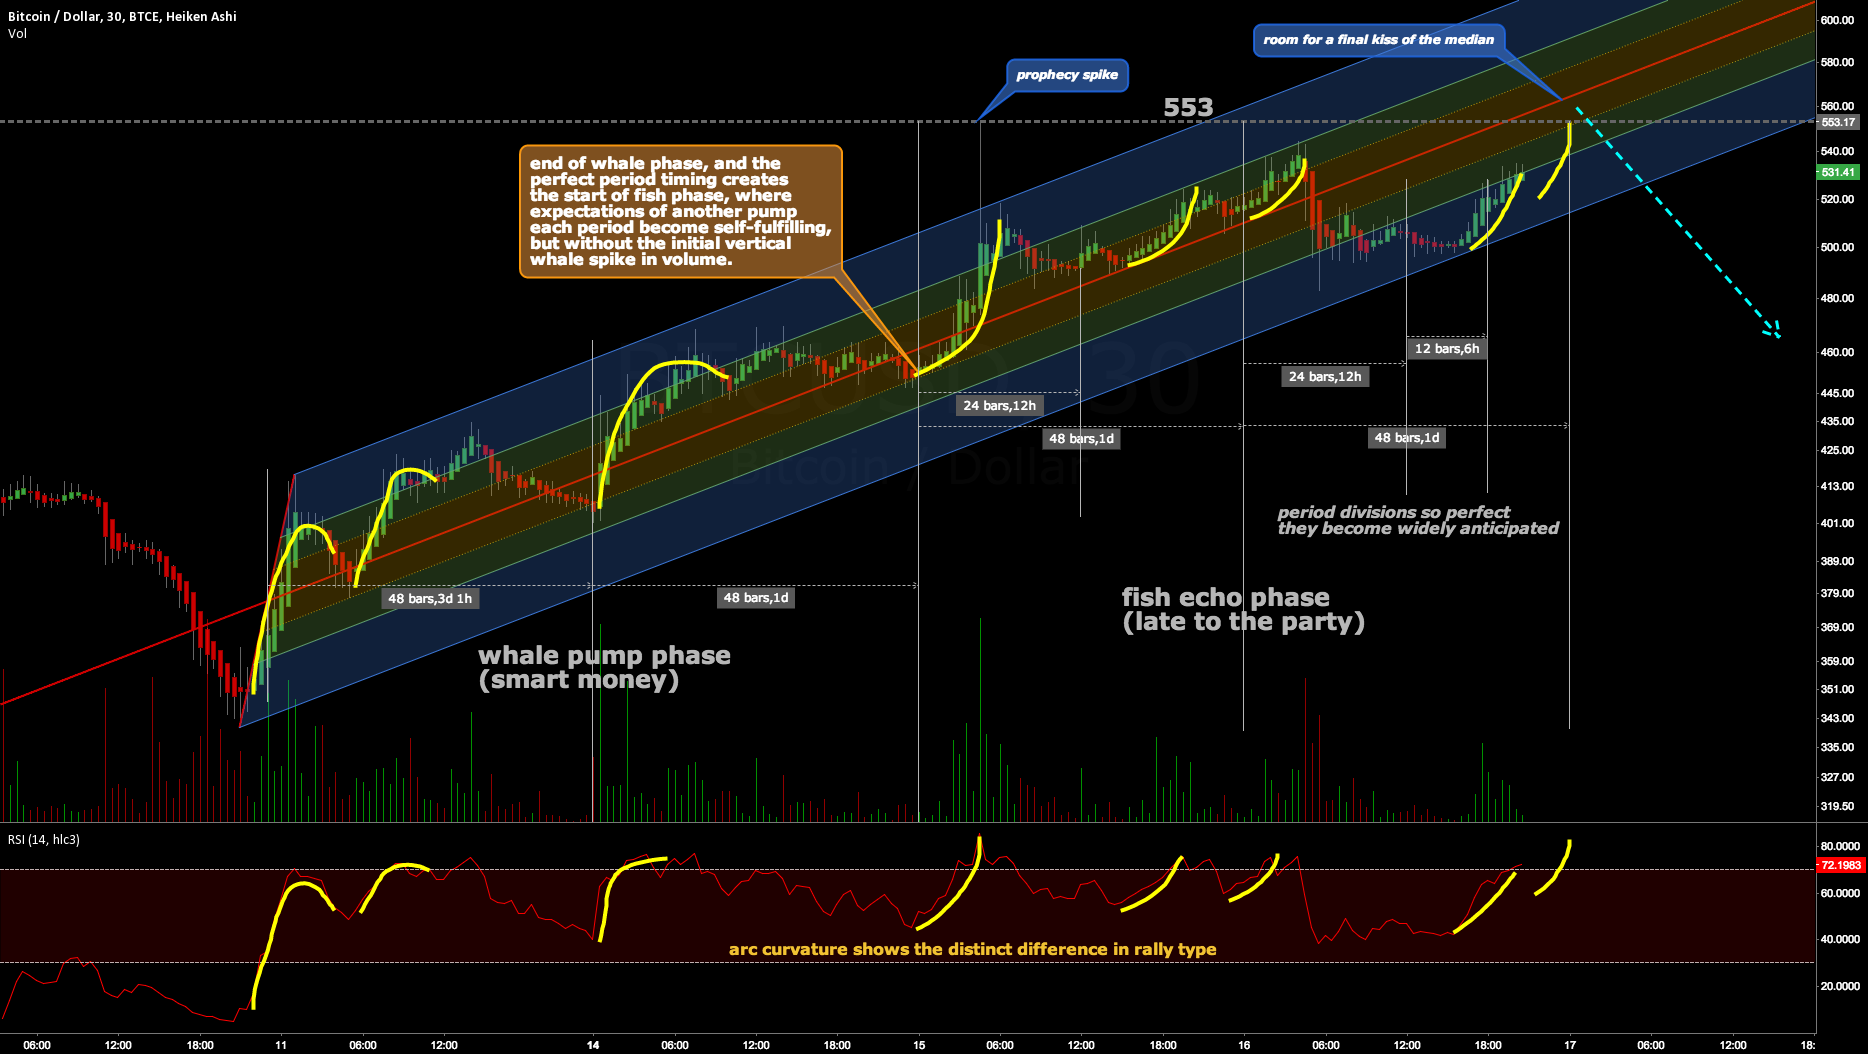 anatomy of a chinese pump rally, long overdue for a correction